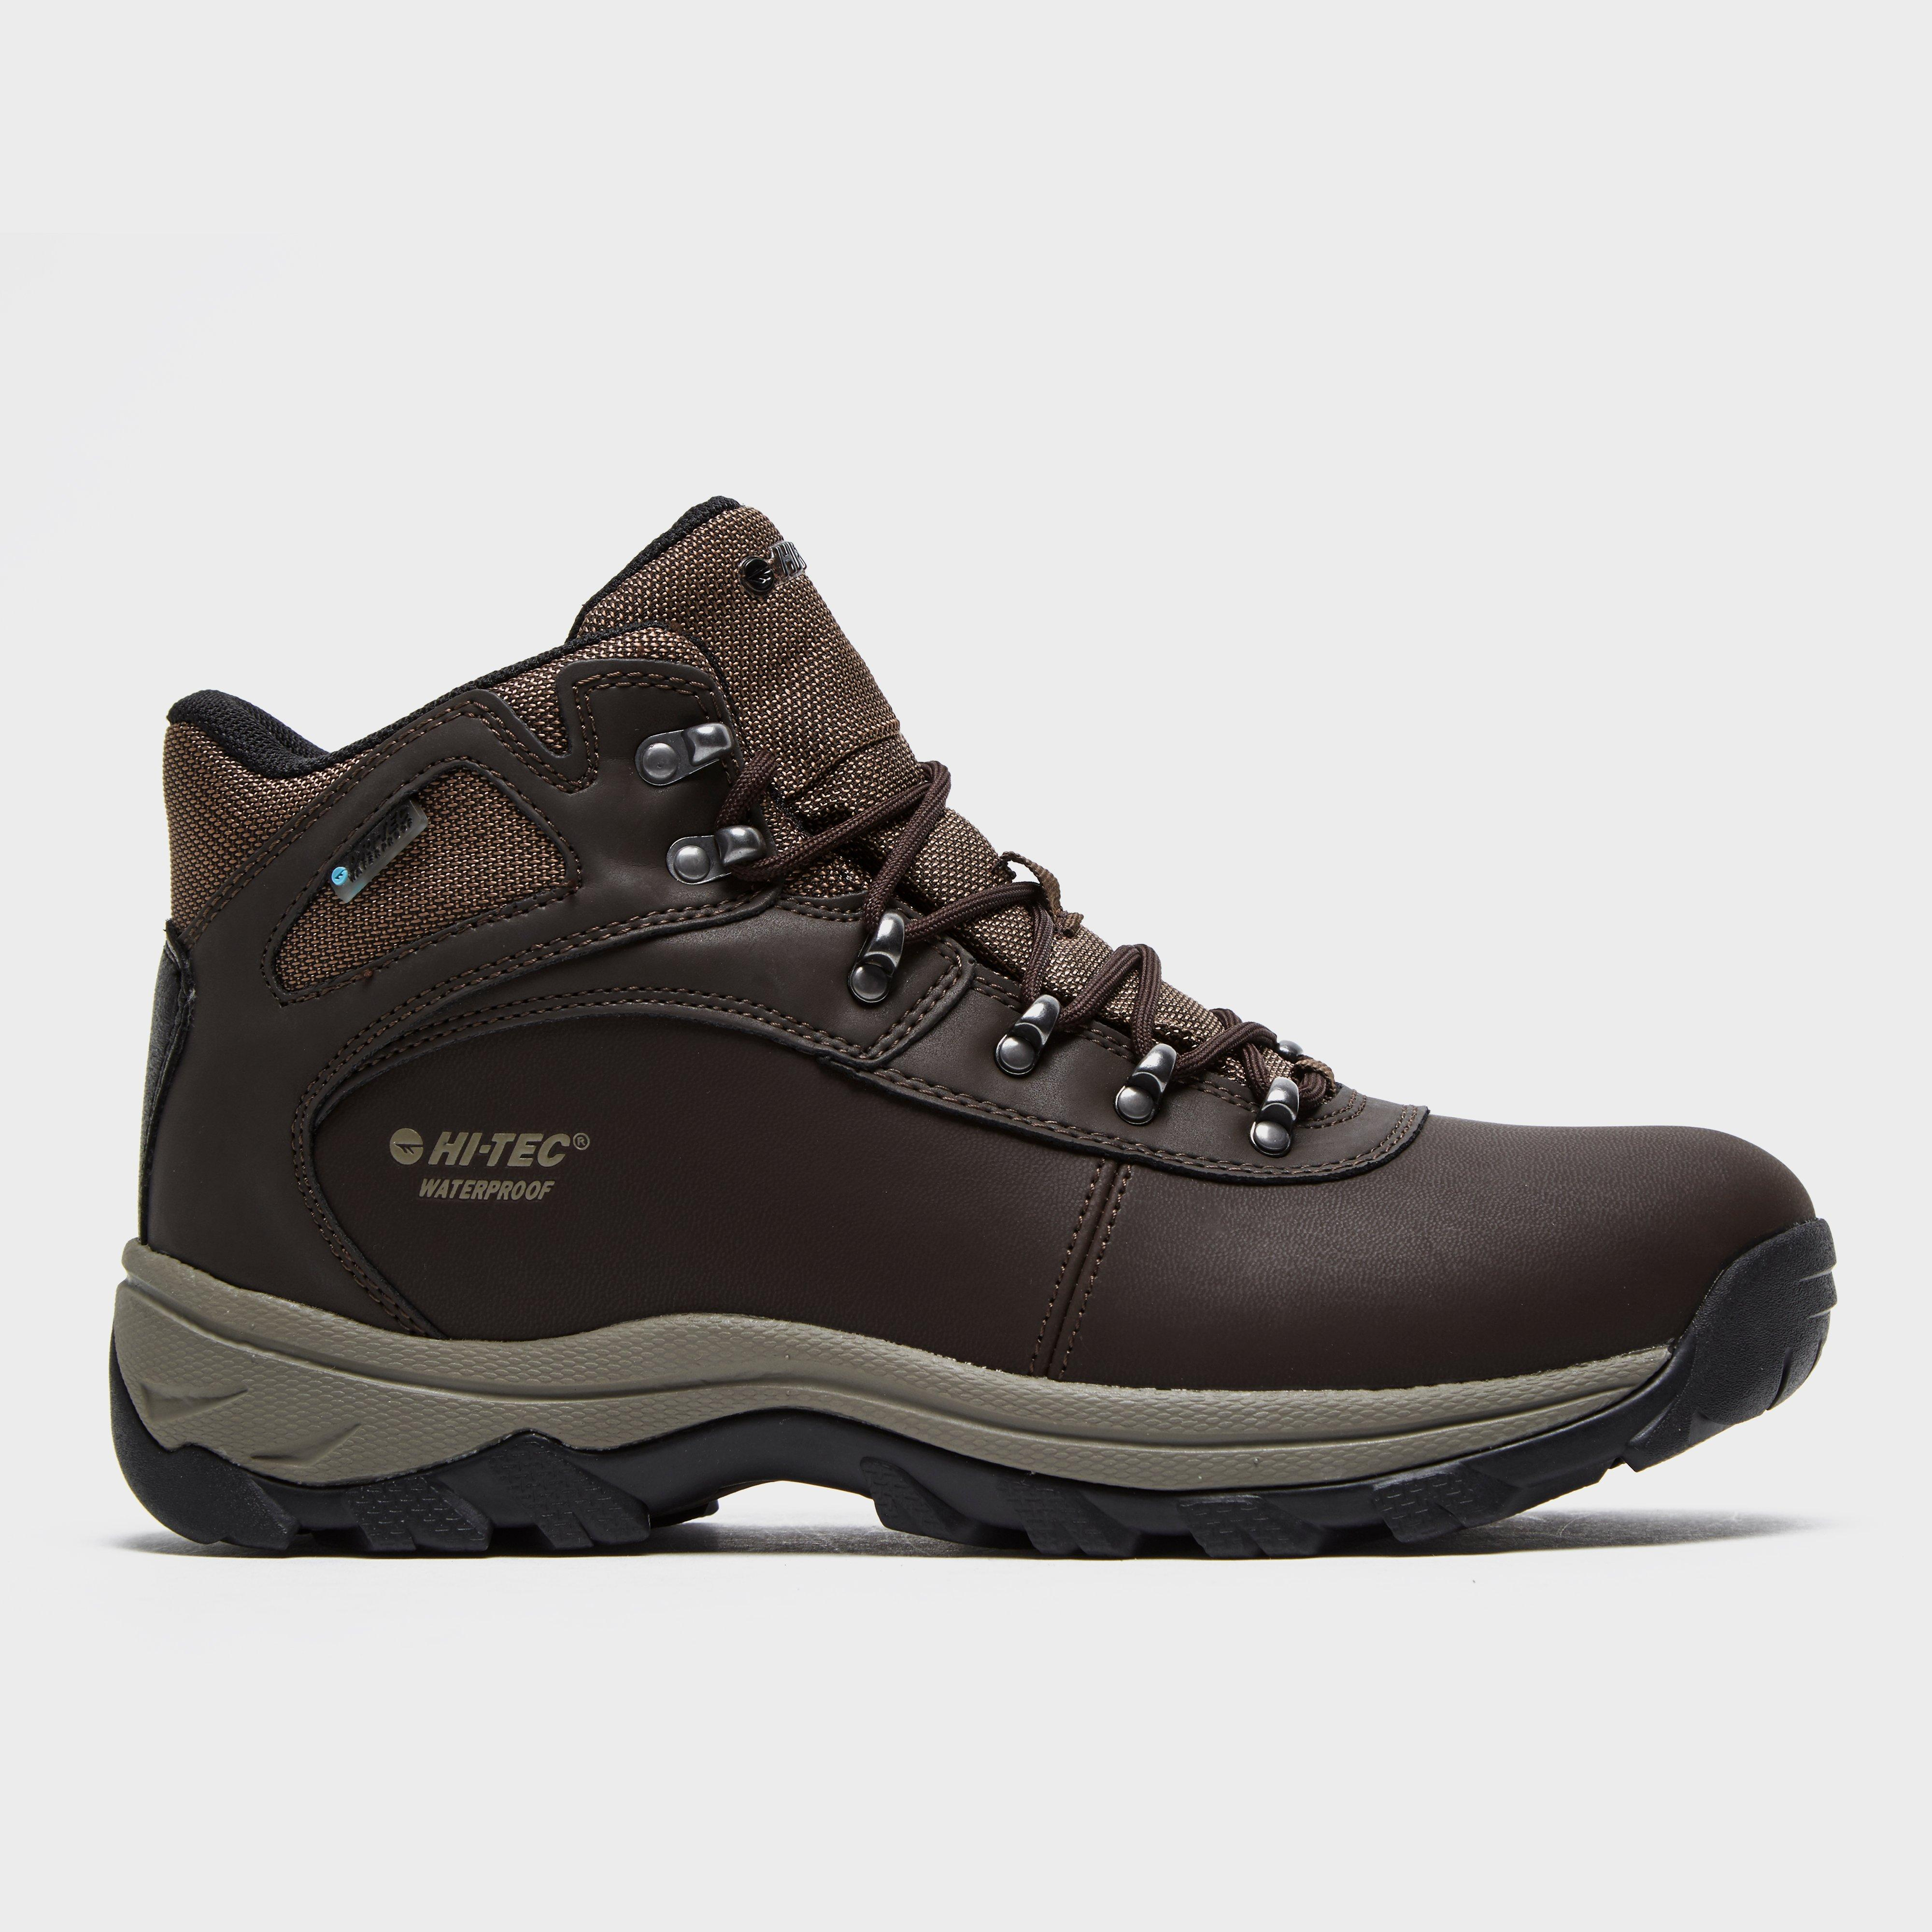 Mens Walking Boots & Hiking Boots   Millets